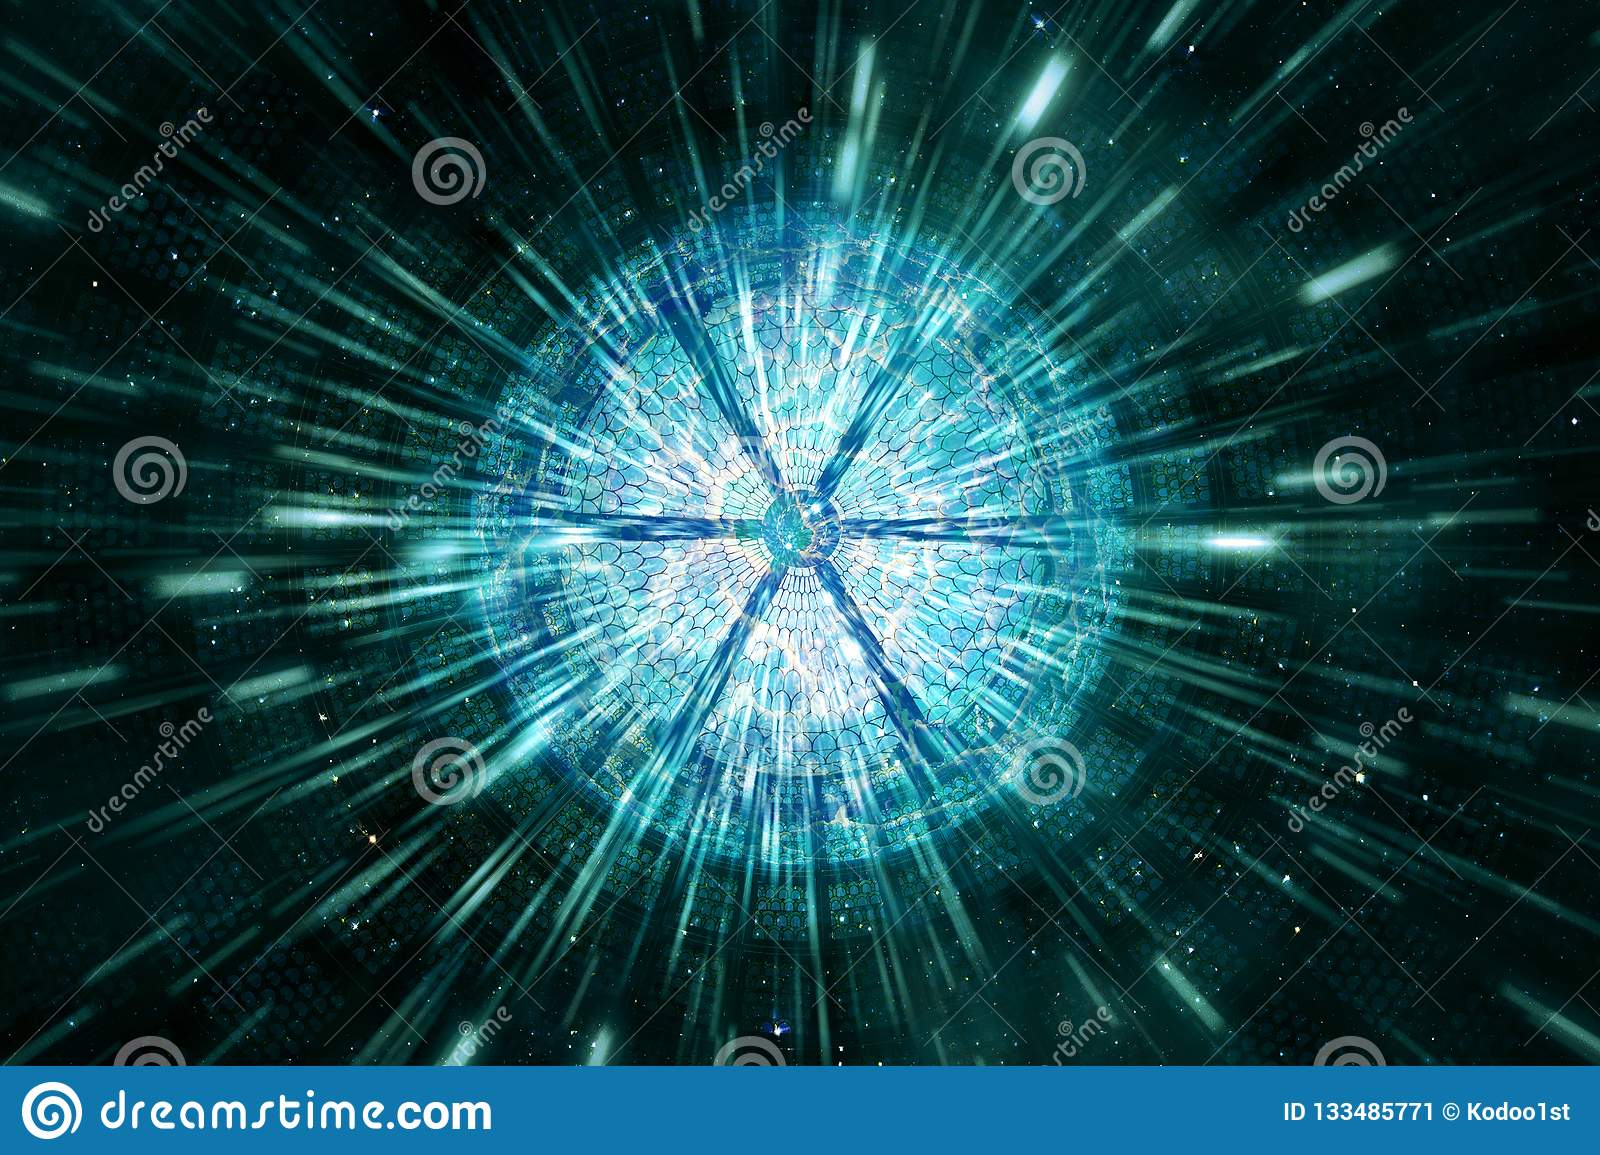 Abstract Modern Digital Round Sliced Shape About To Explode Artwork In A Speeding Beams Of Light Background